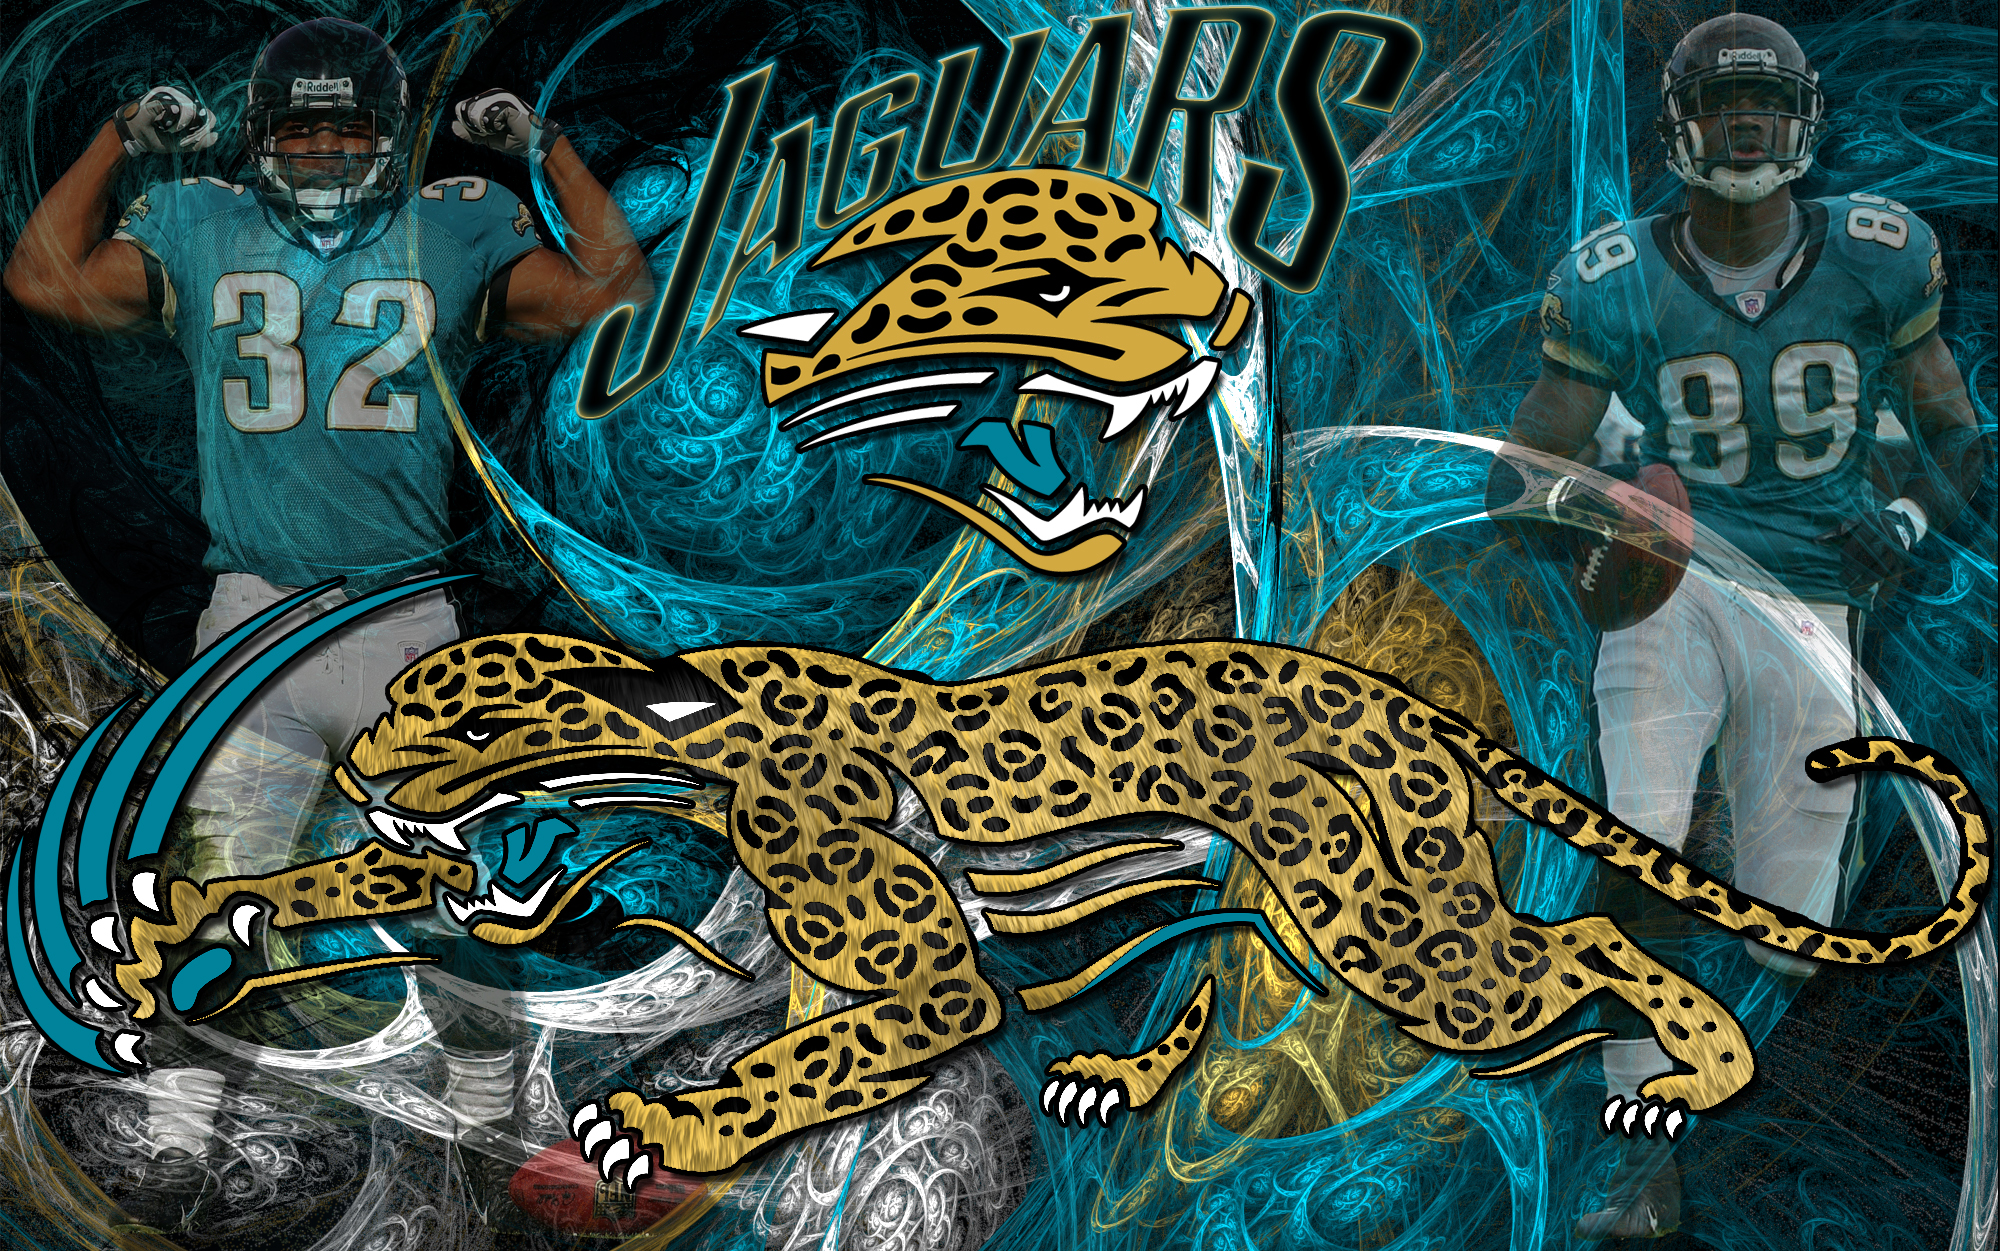 Jacksonville Jaguars HD Wallpaper - WallpaperSafari